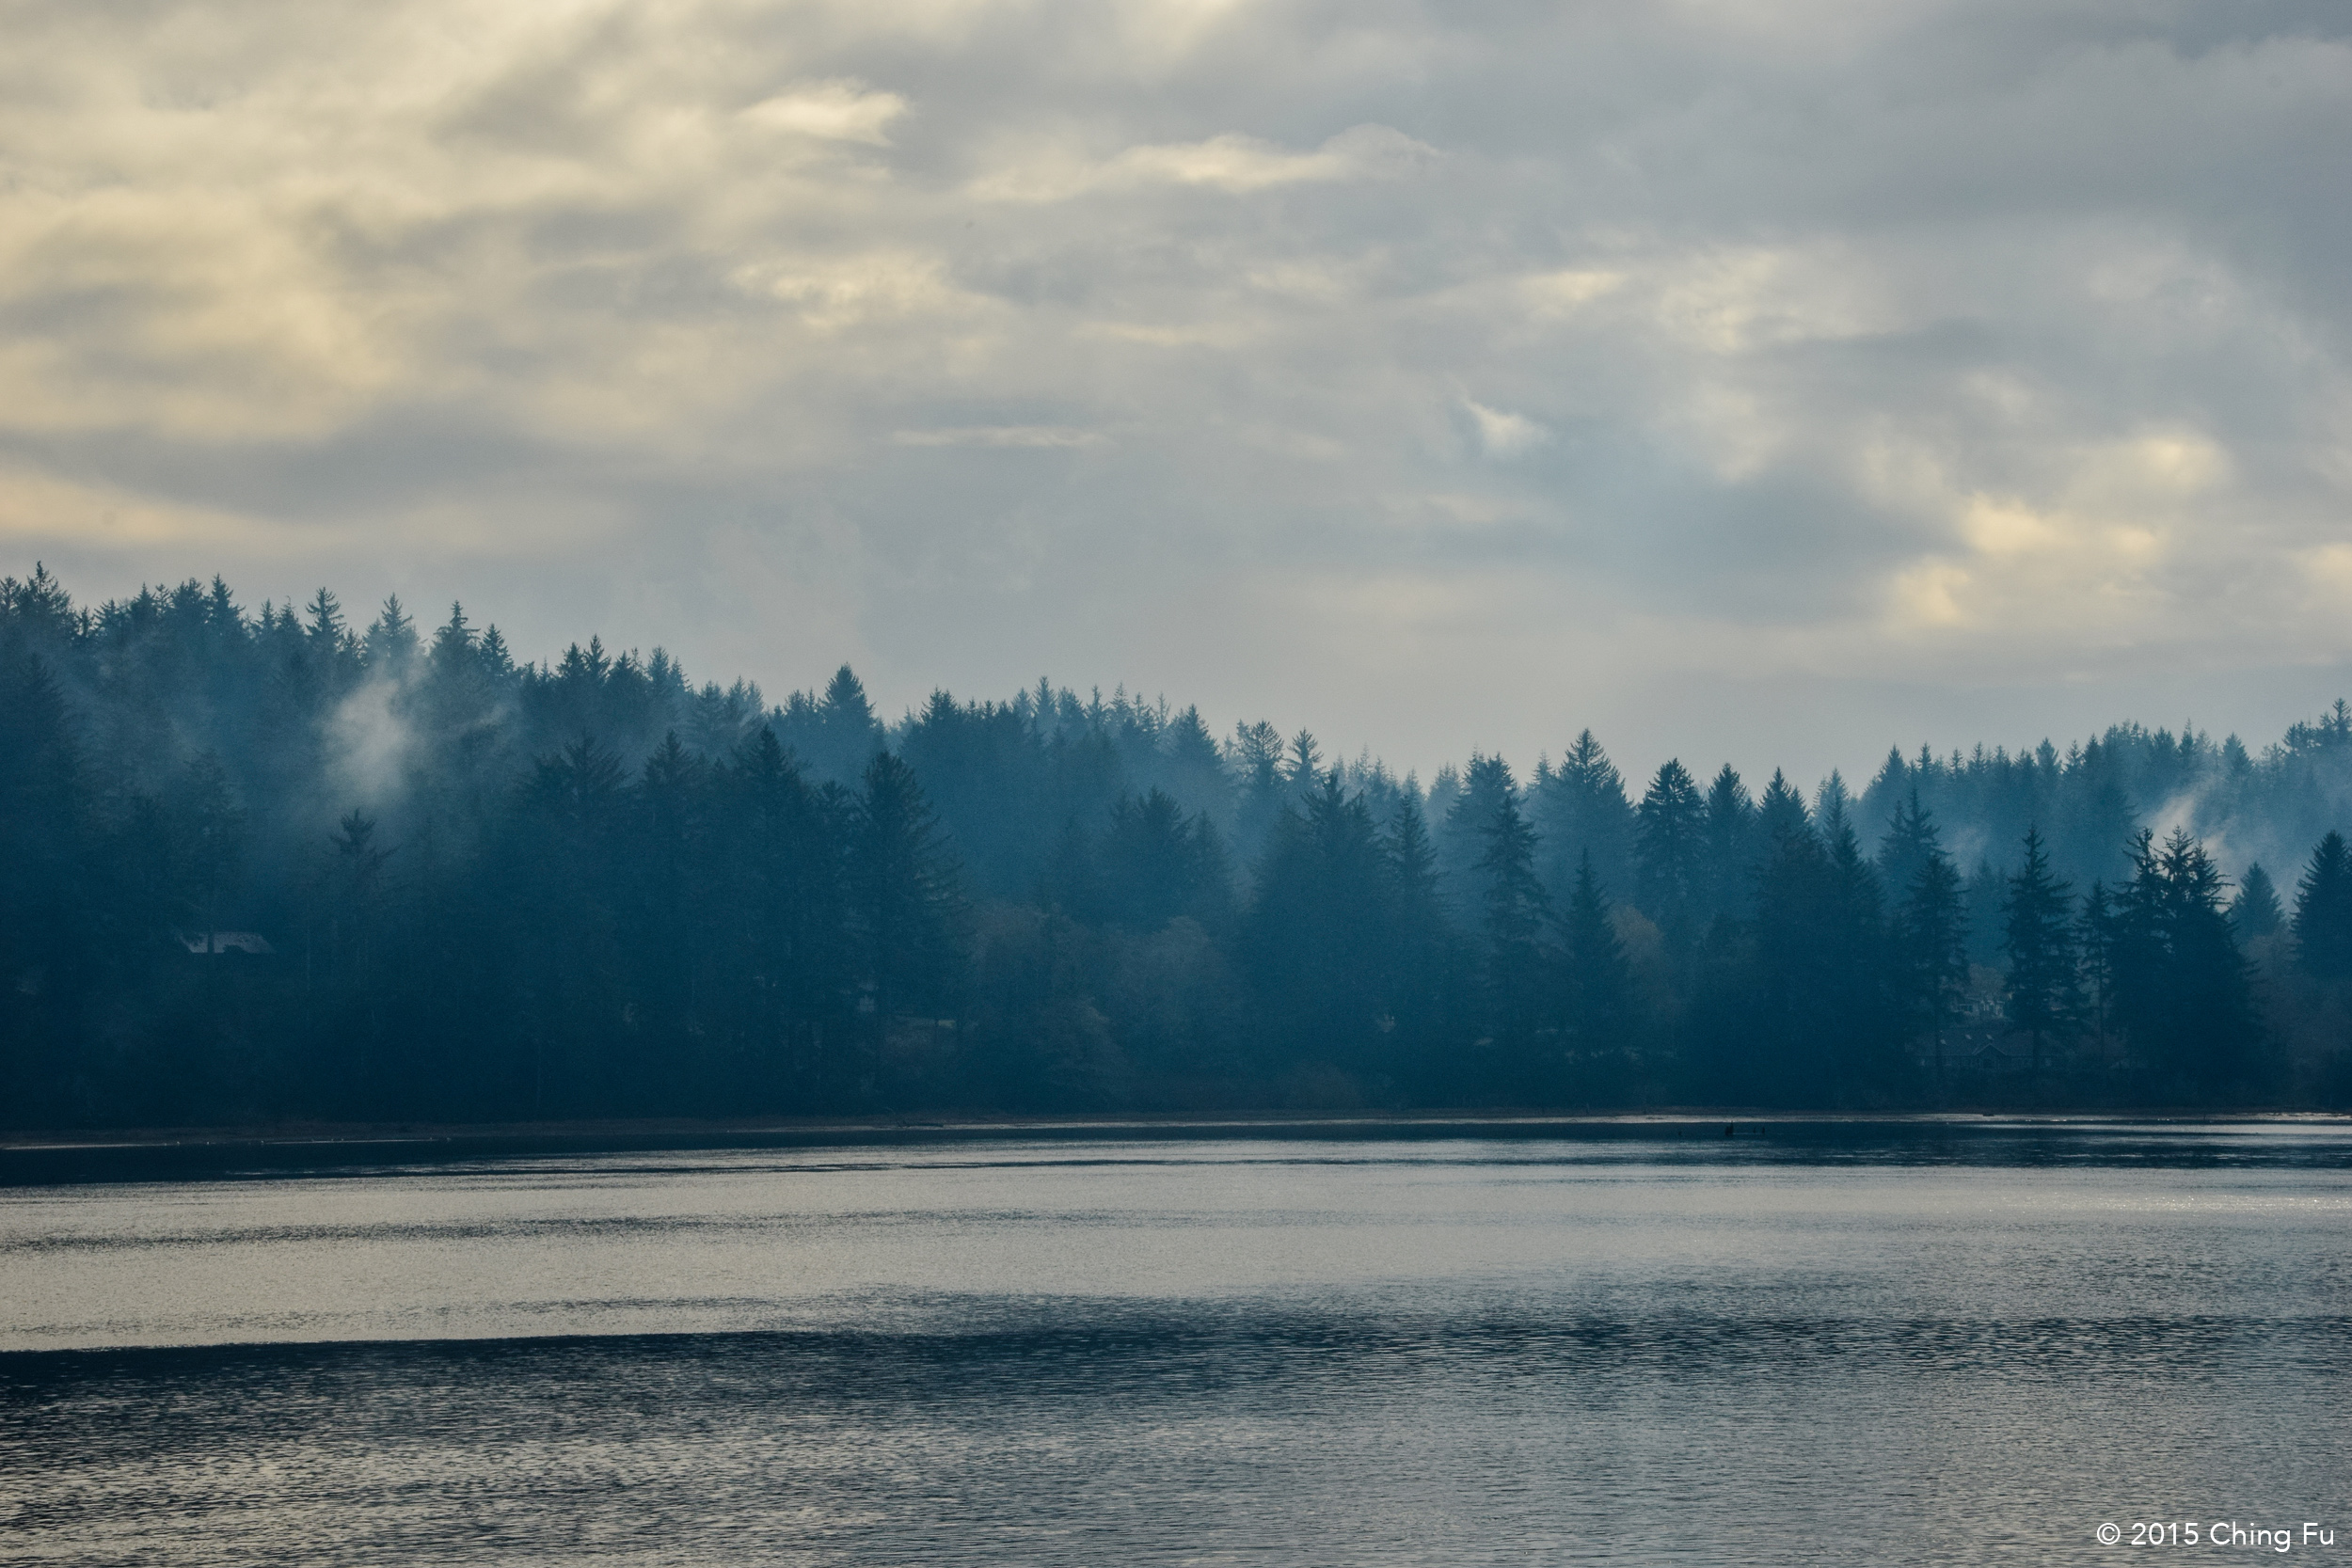 Smoky view of the Siuslaw River.